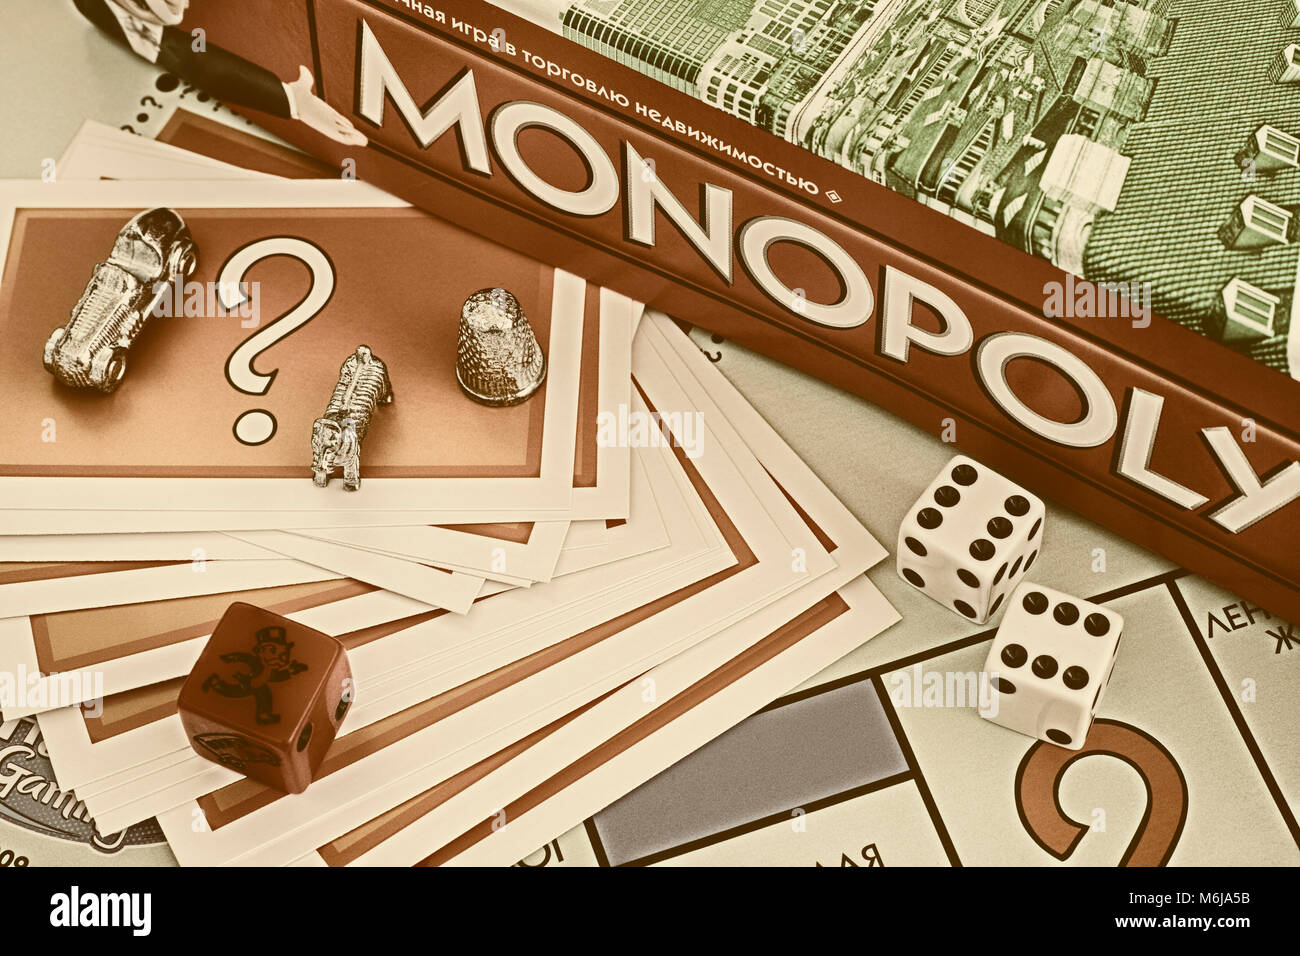 Tambov, Russian Federation - January 26, 2018 Monopoly Board Game box, Chance cards, tokens, dices on the gameboard. - Stock Image